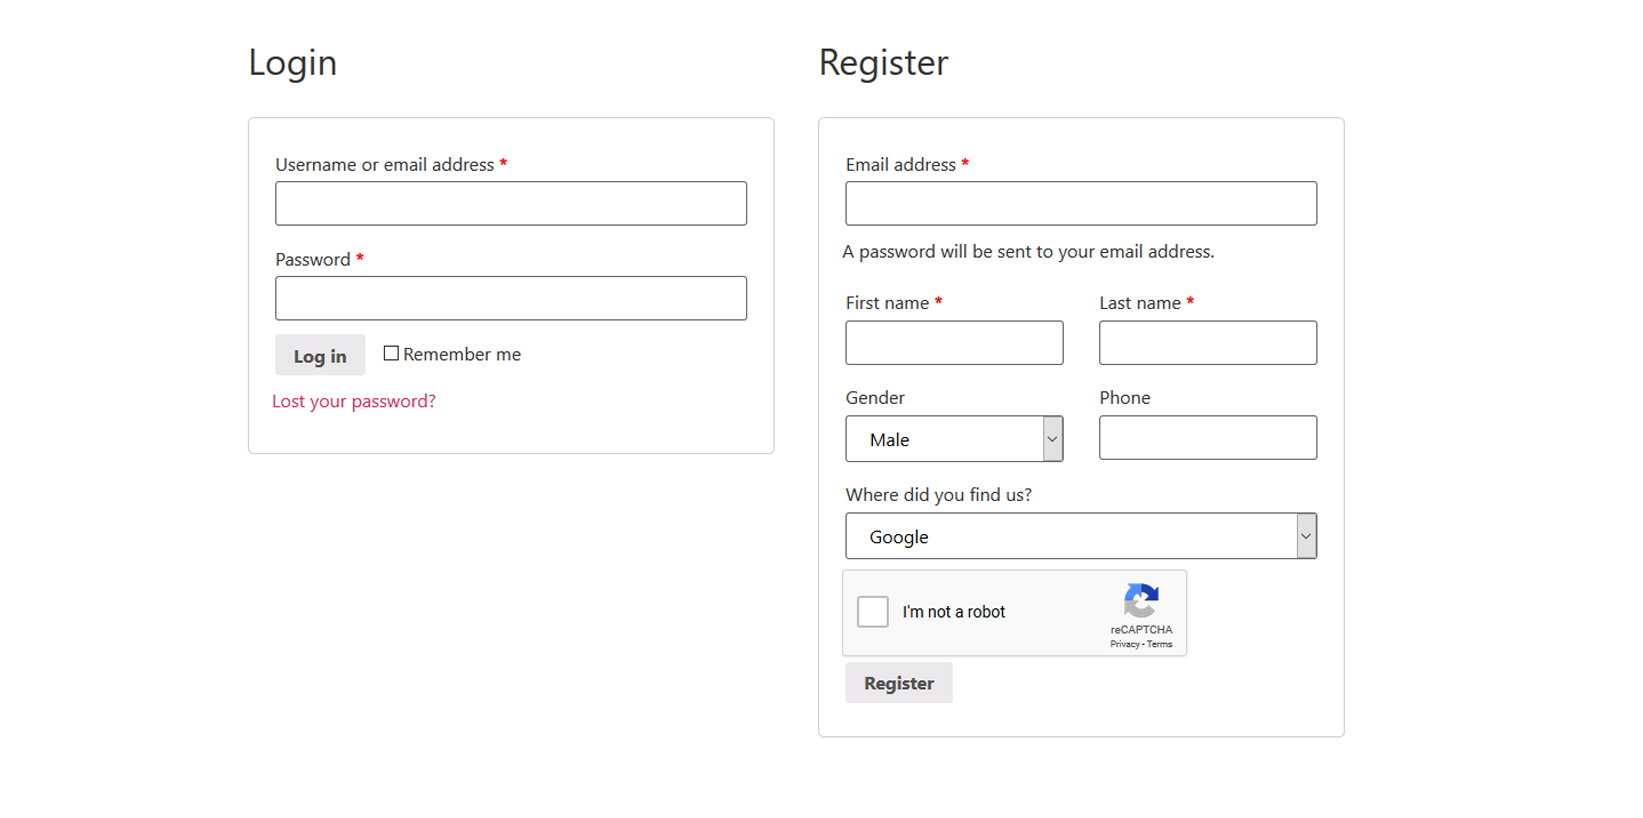 assets/screenshot-1.png this is a woocommerce registration page view.